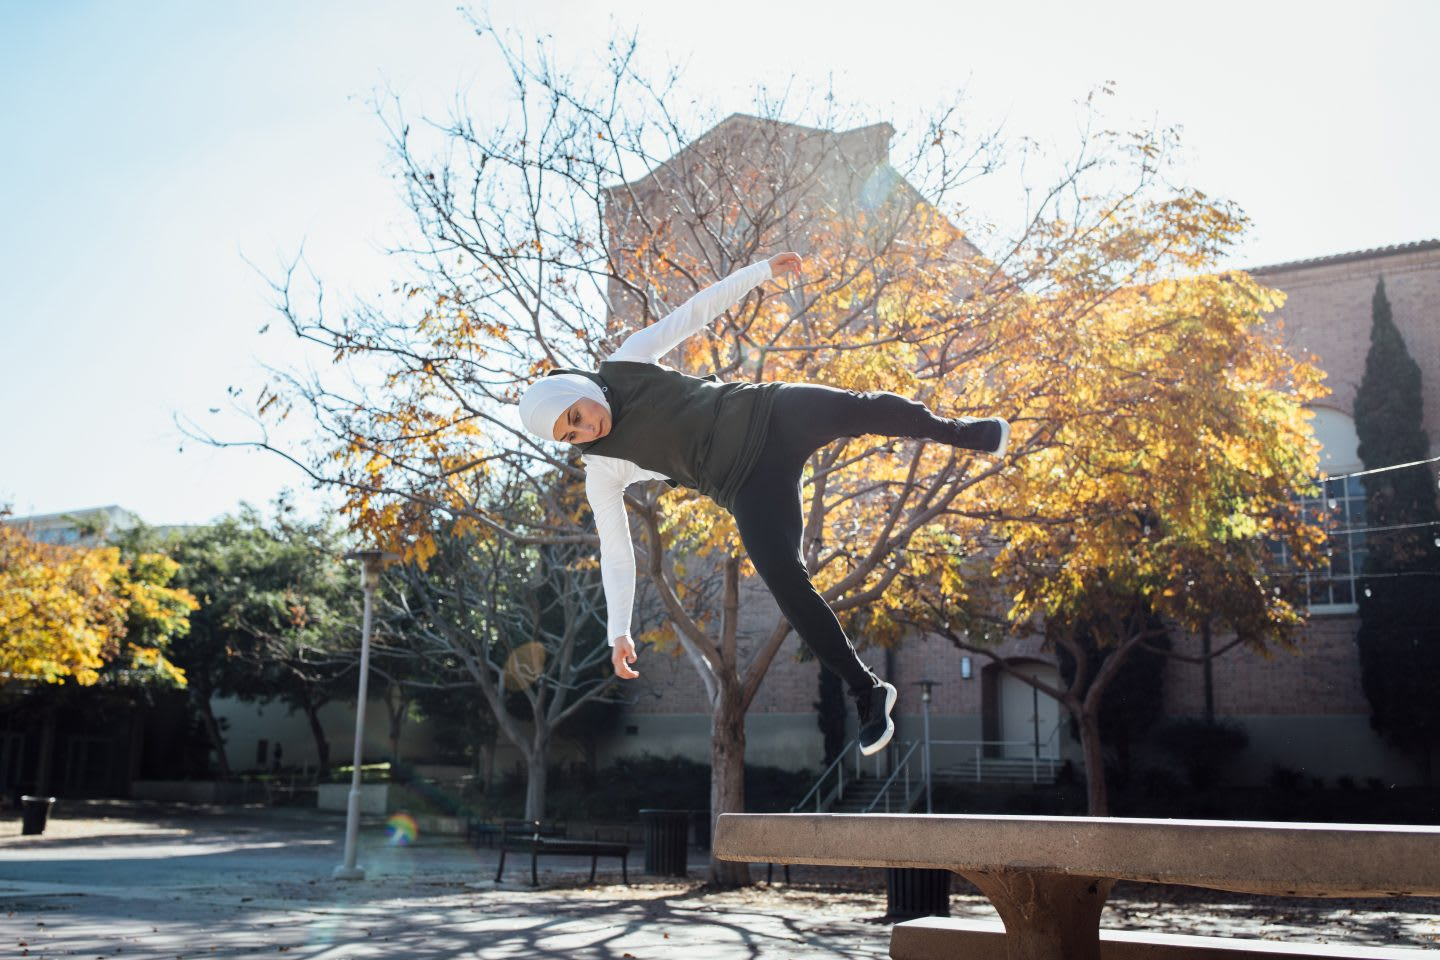 Girl doing flip in the air on a sunny day, parkour, sports, action, fitness, exercise, Sara Mudallal